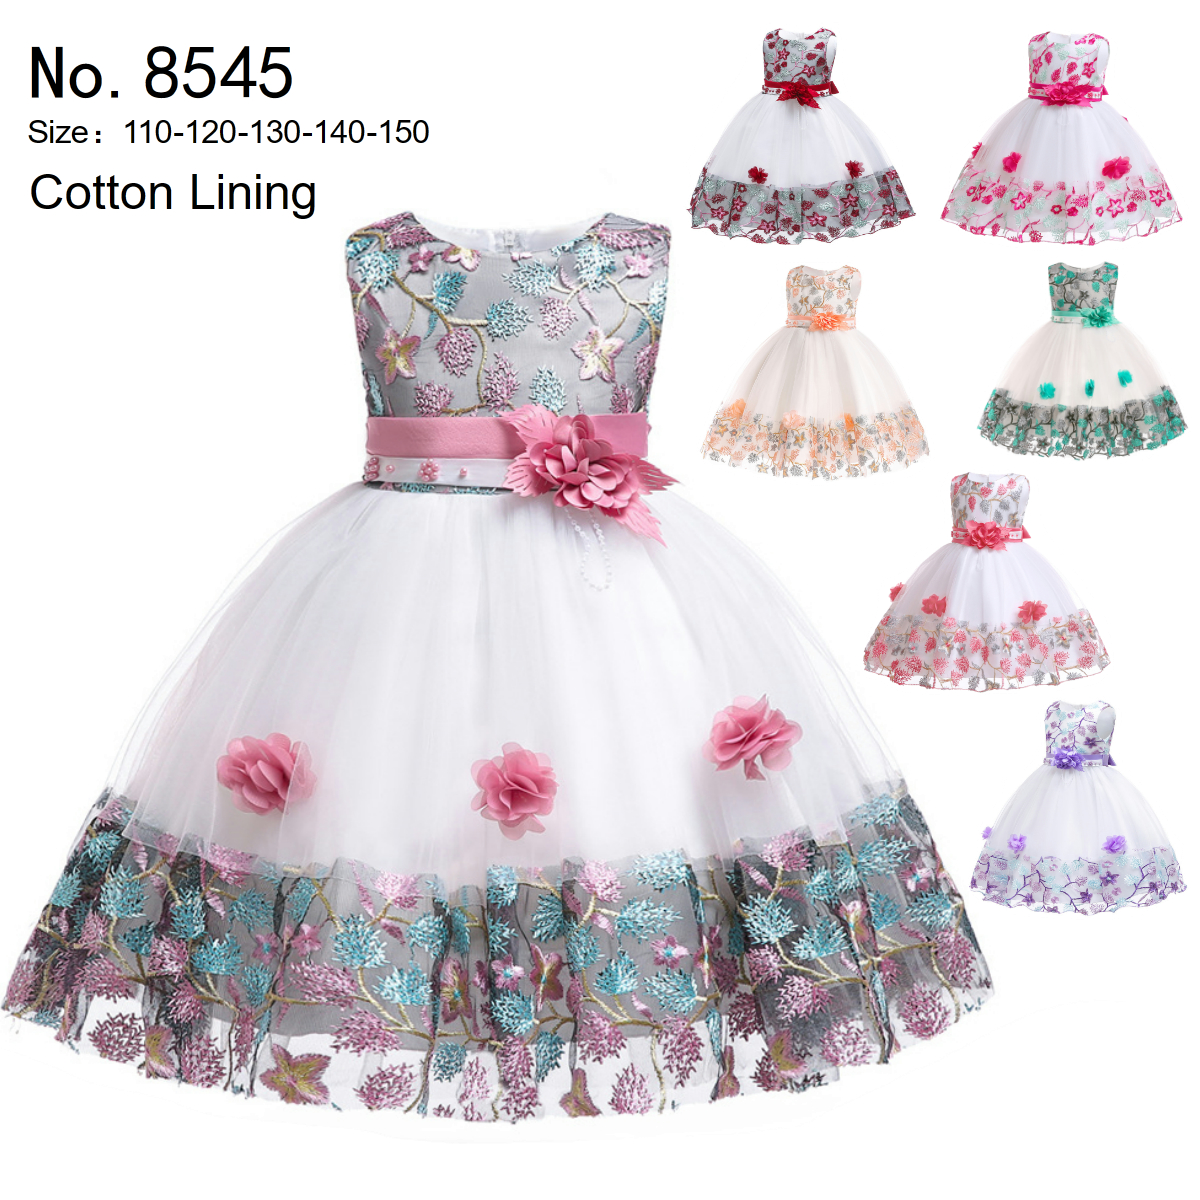 Free Shipping Cotton Lining Girl Dresses 2019 New Arrival Flower Girl Dresses For Weddings Party Gowns